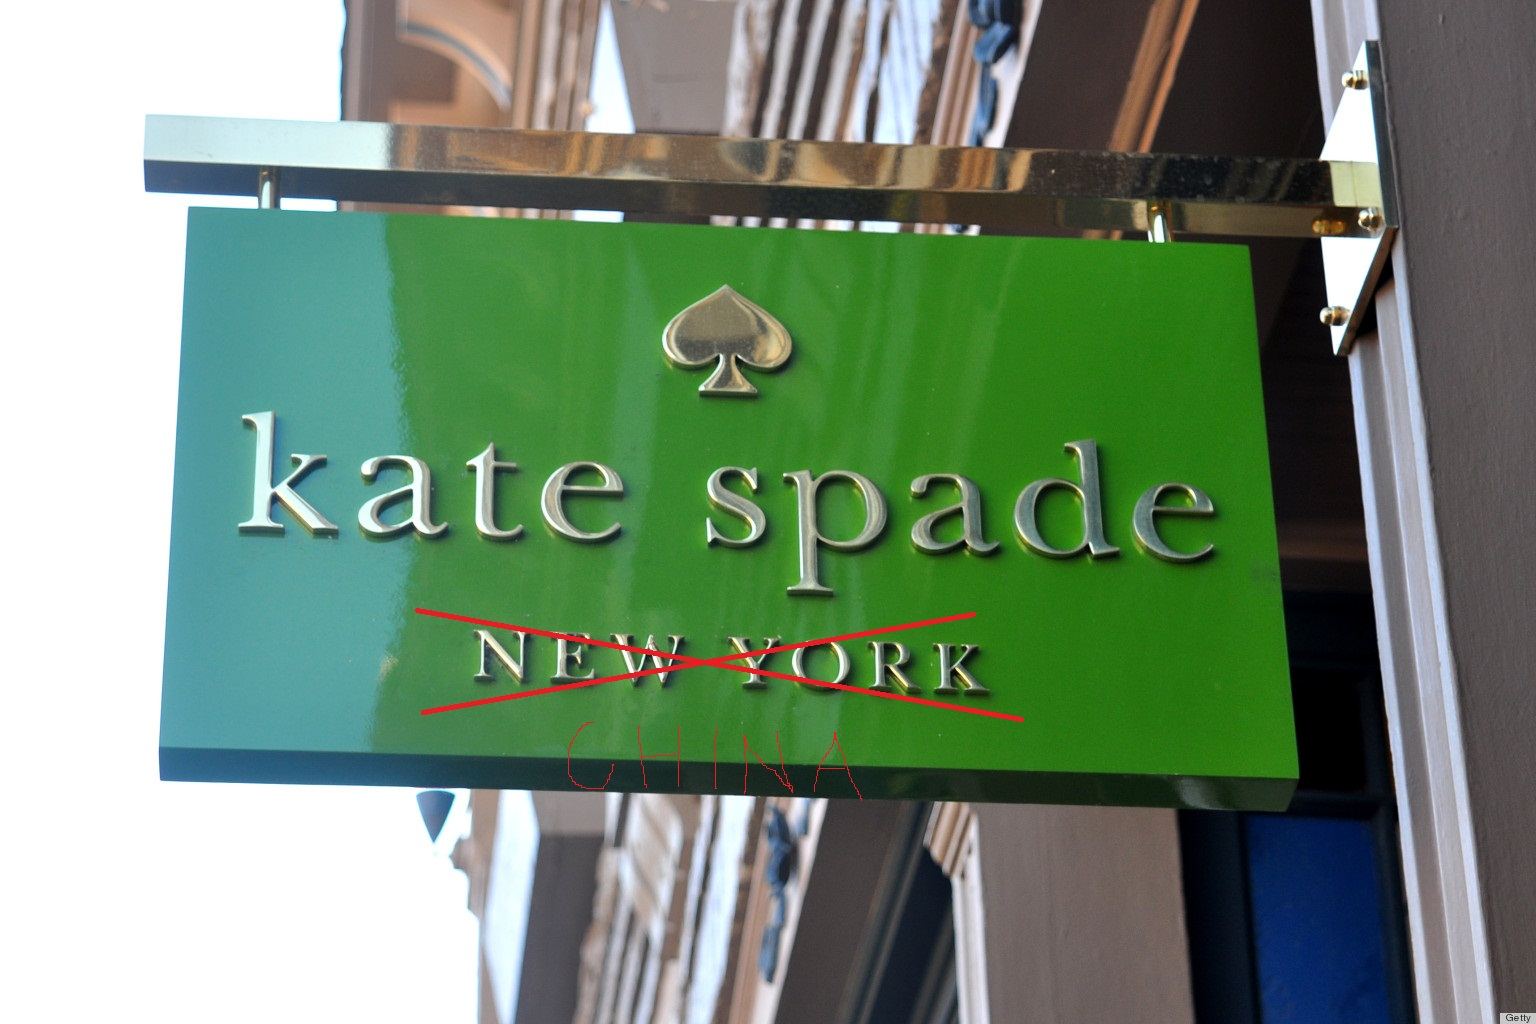 Kate Spade made in China